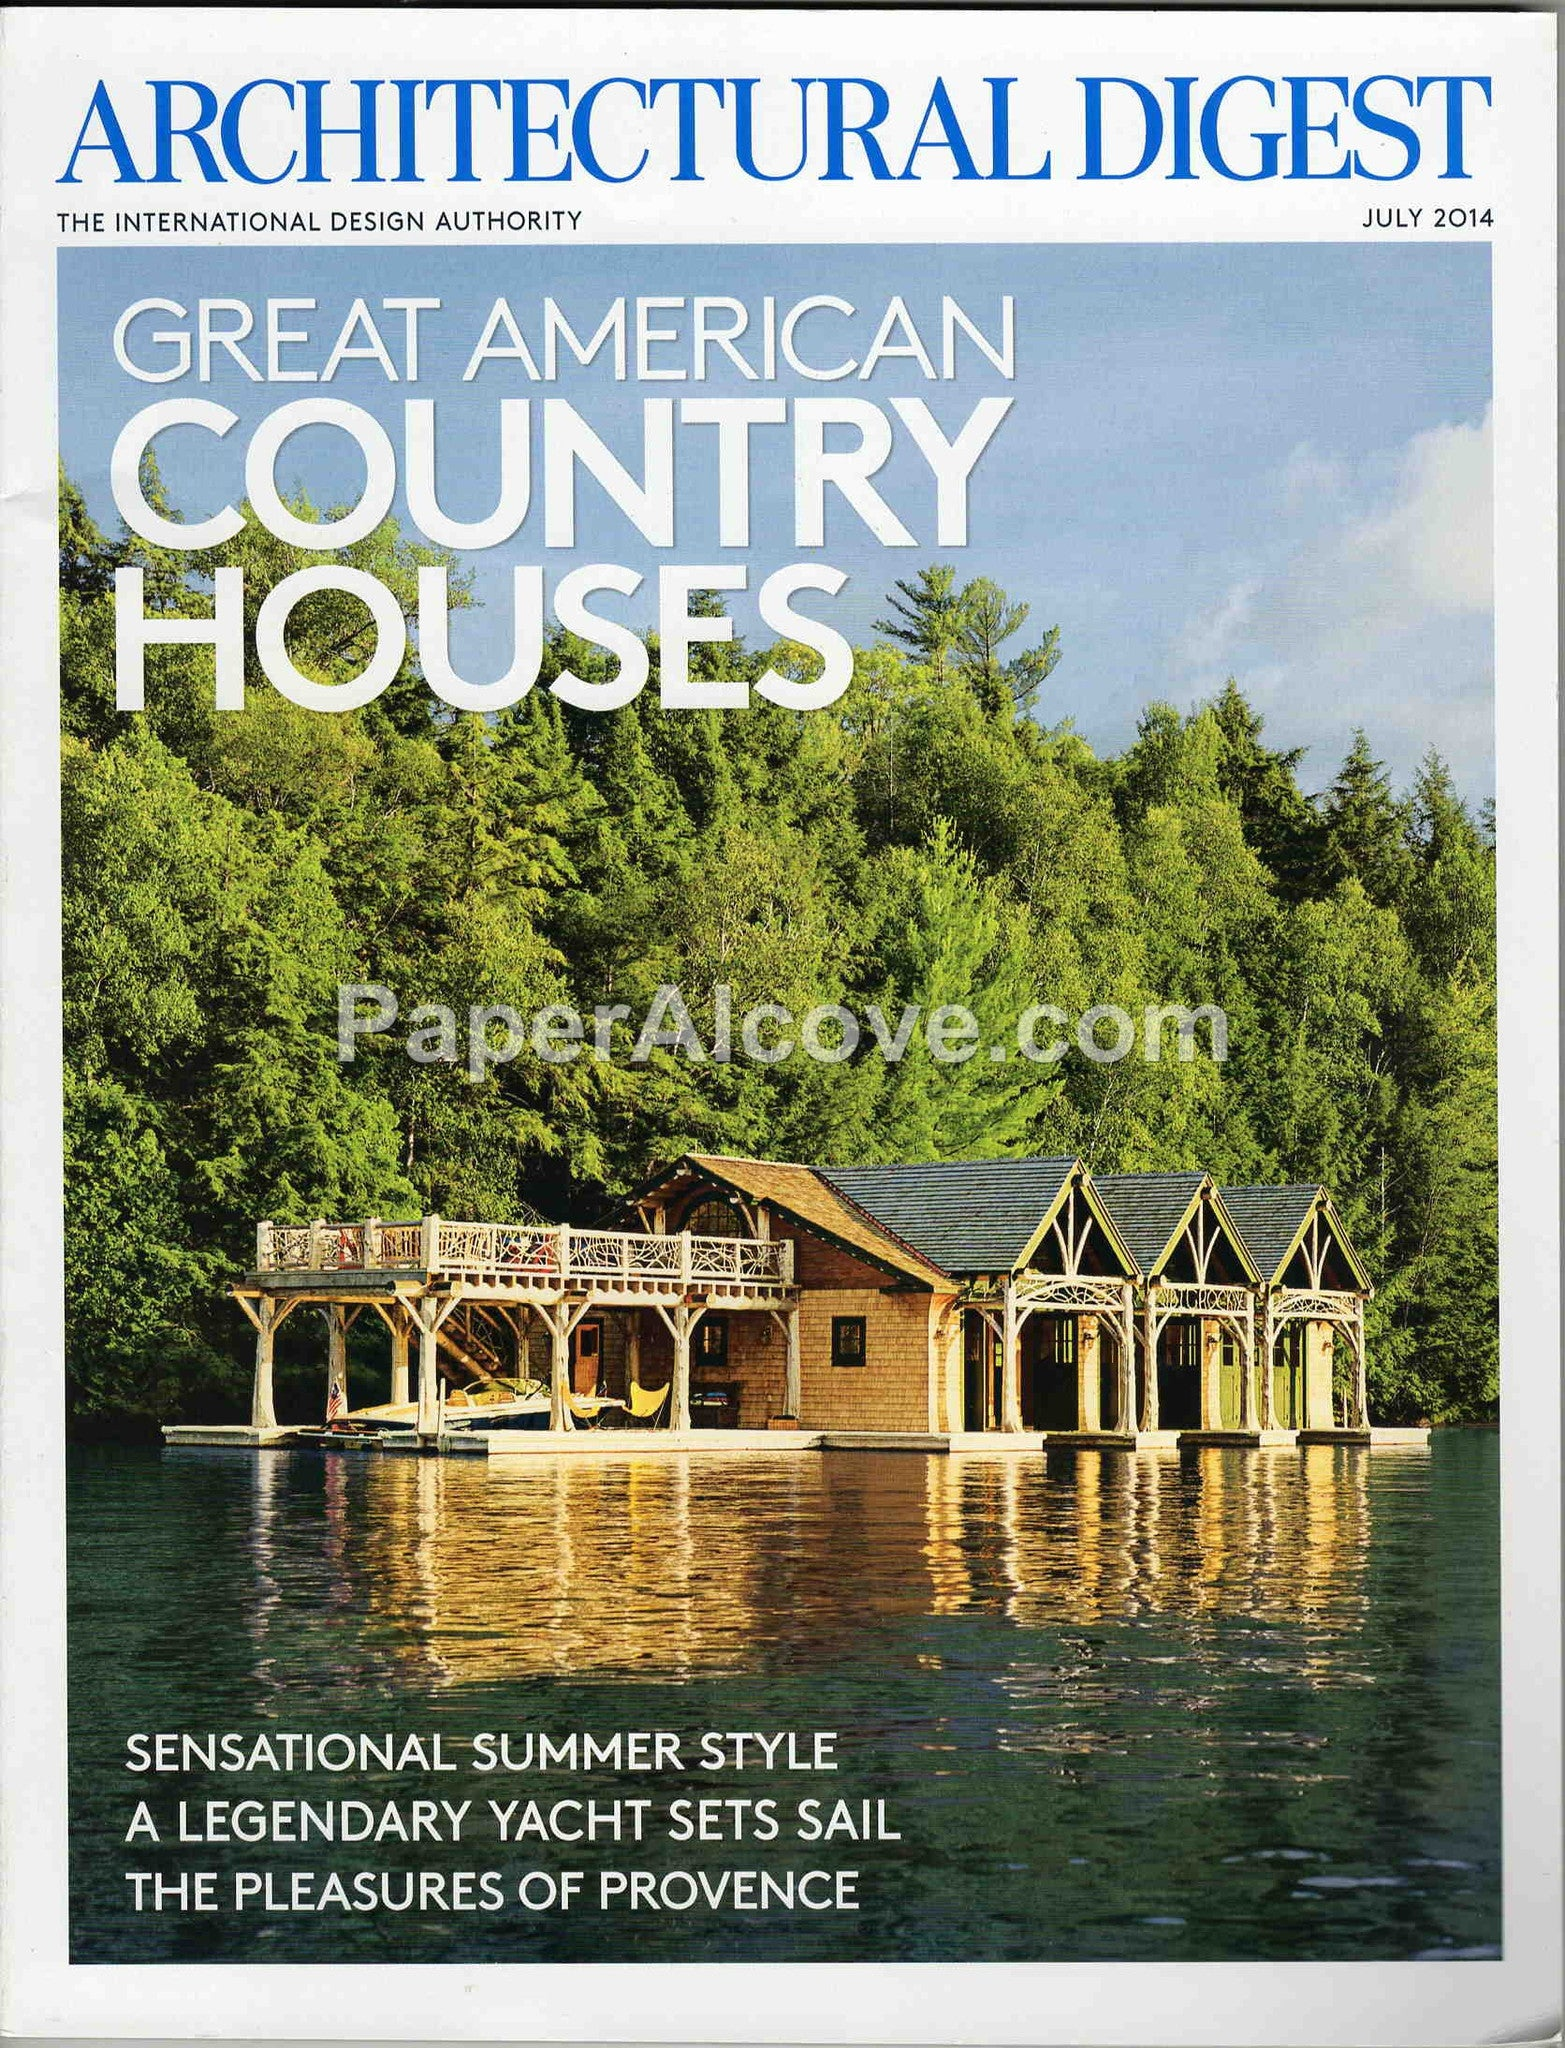 Architectural Digest July 2014 magazine Great American Country Houses |  Paper Alcove